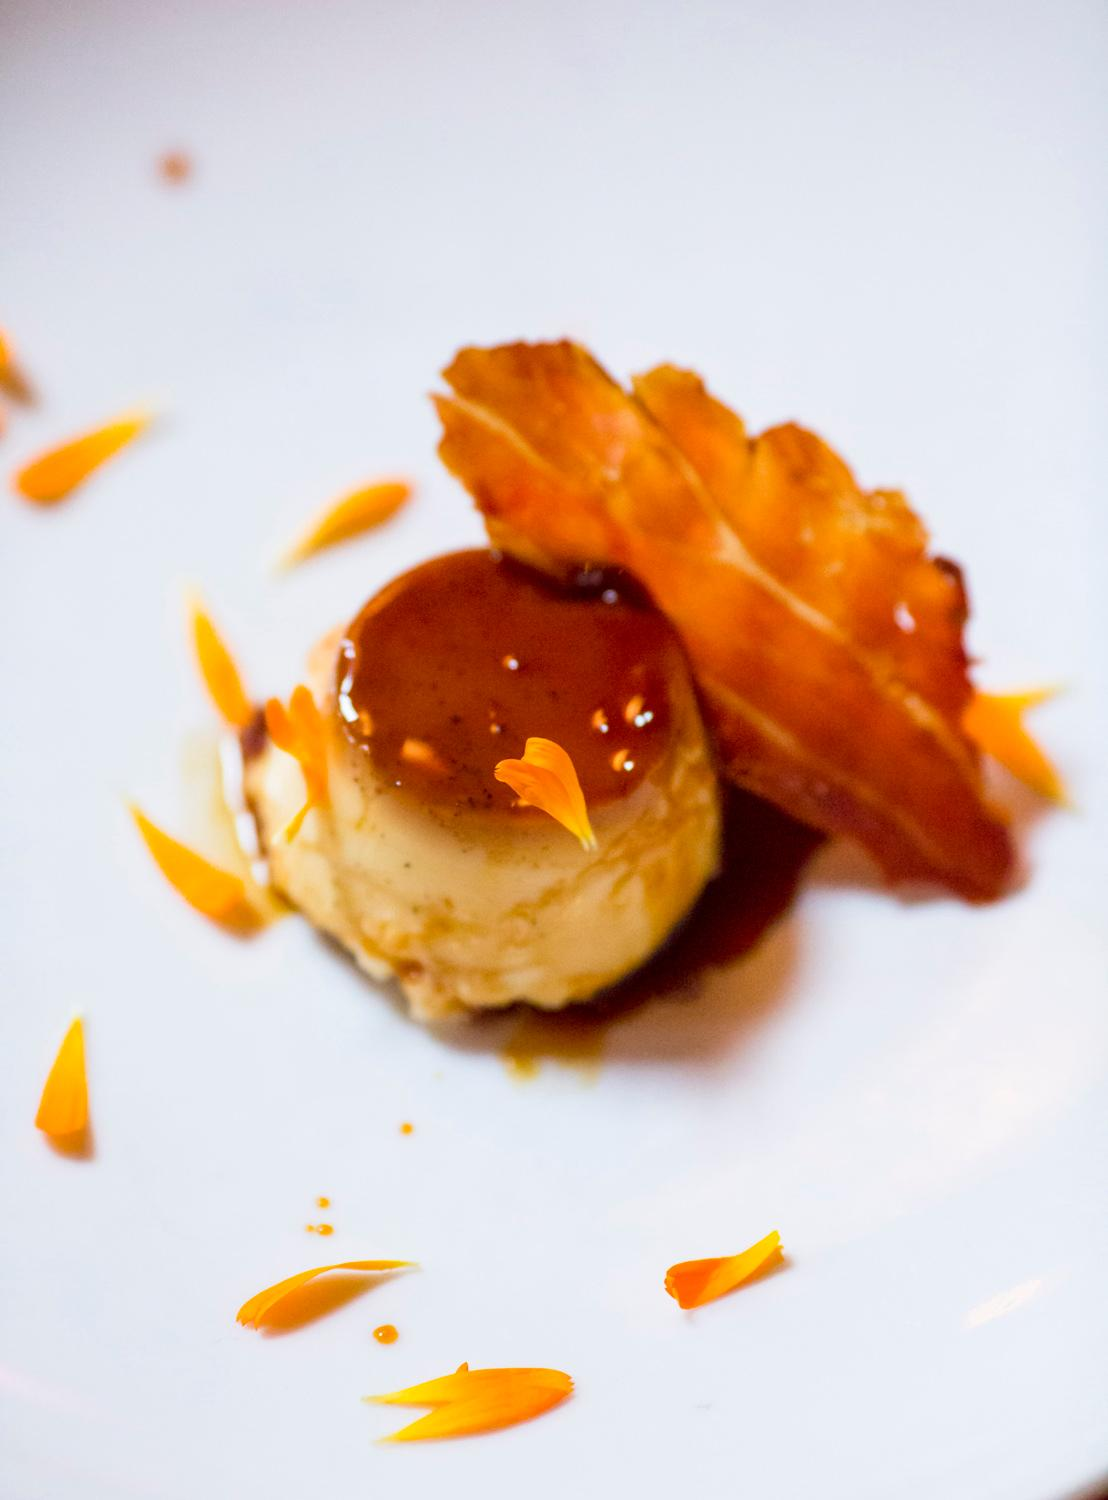 Dolce. Crem Caramel con Prosciutto Crocante, caramel flan with crispy prosciutto.{ }(Image: Sy Bean / Seattle Refined).